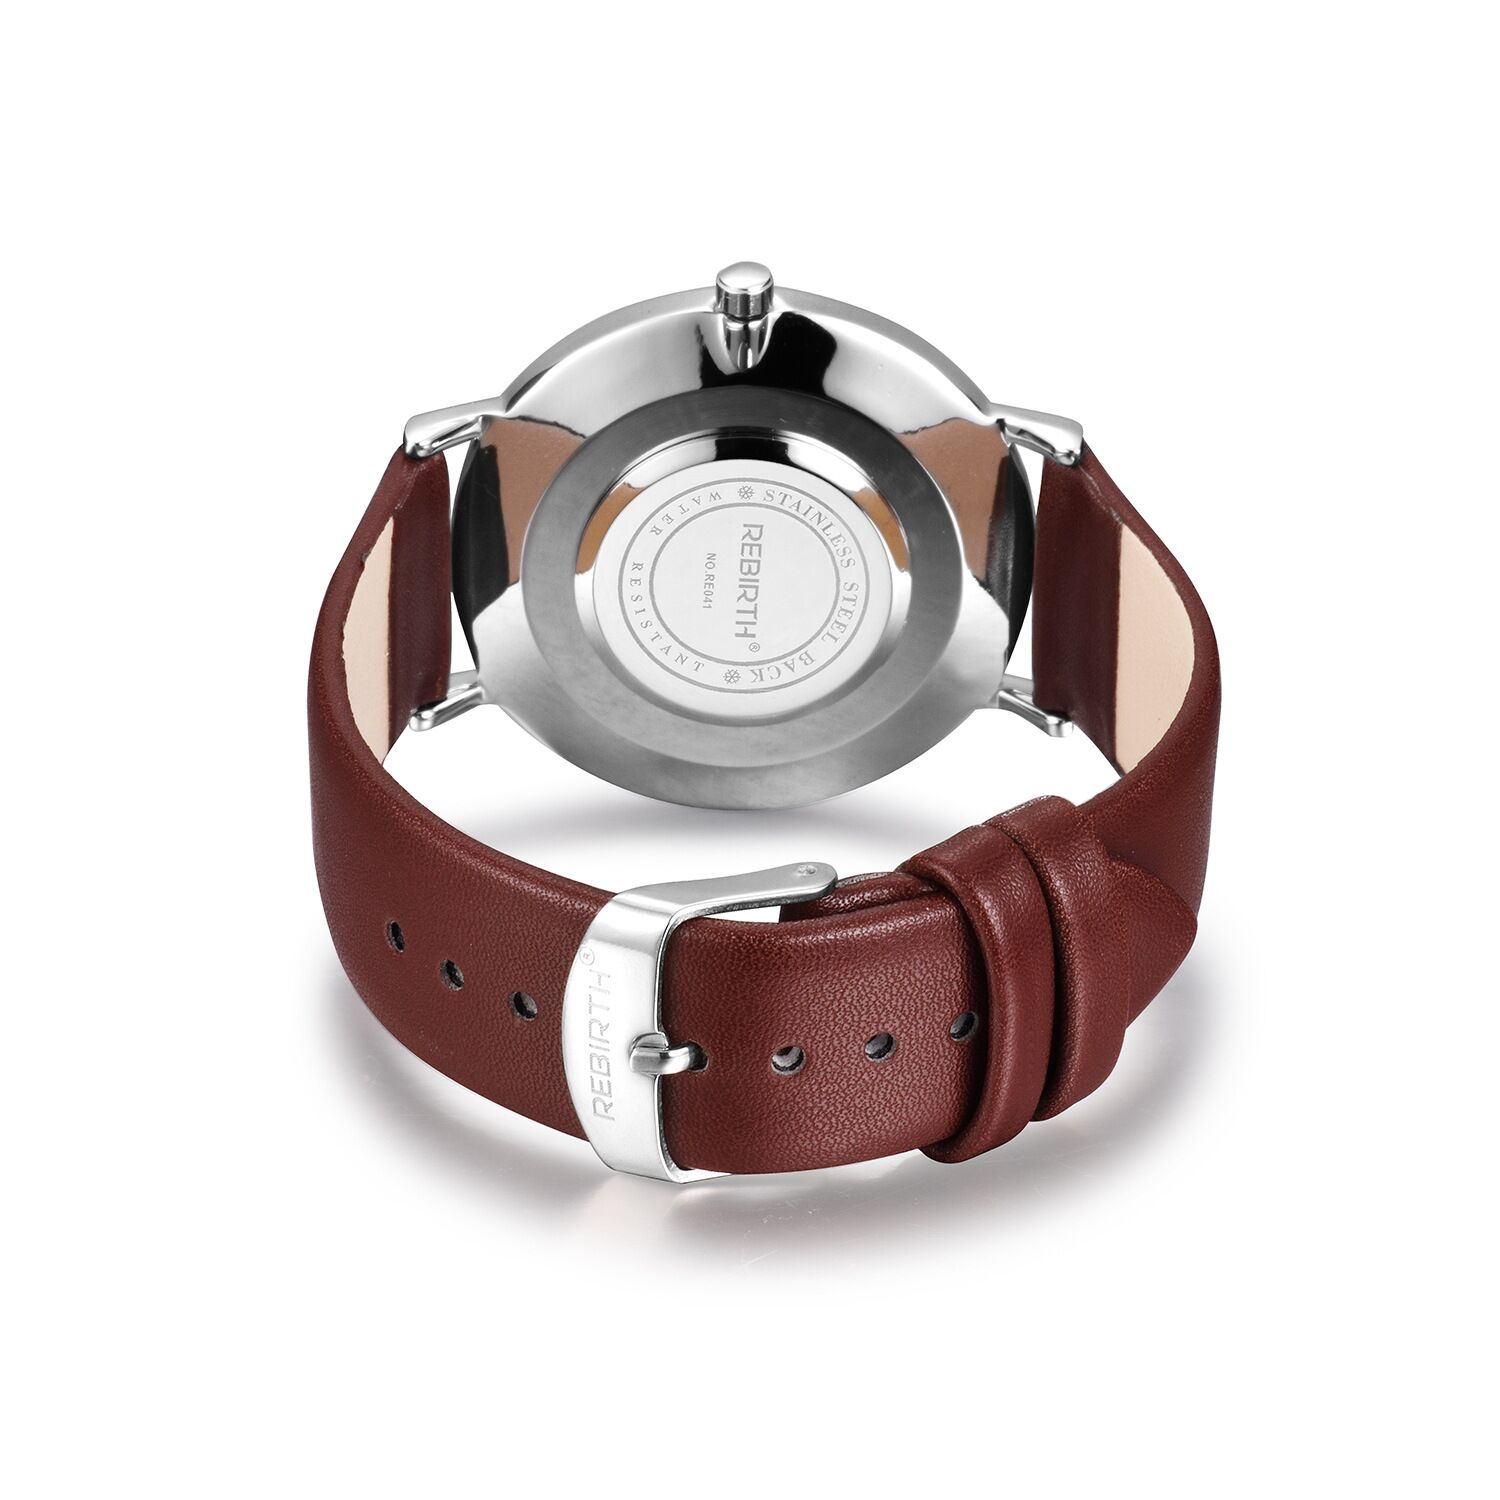 RE071 REBIRTH Quartz Movement Leather Band Watch